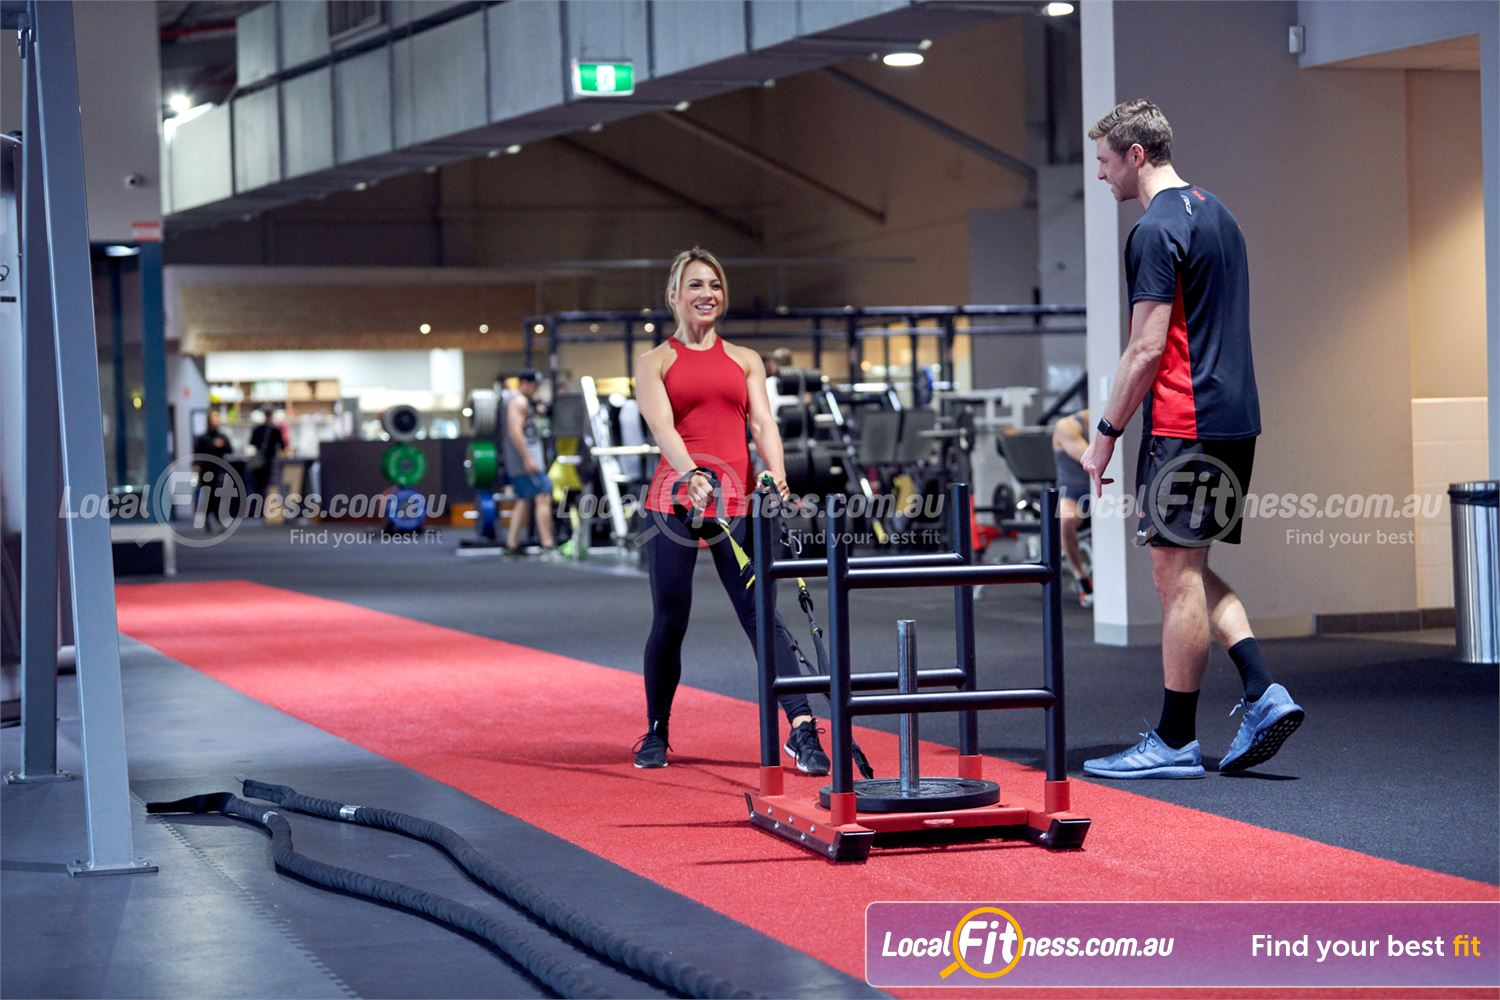 Fitness First Platinum Richmond The indoor sled track will help your workouts stay functional.